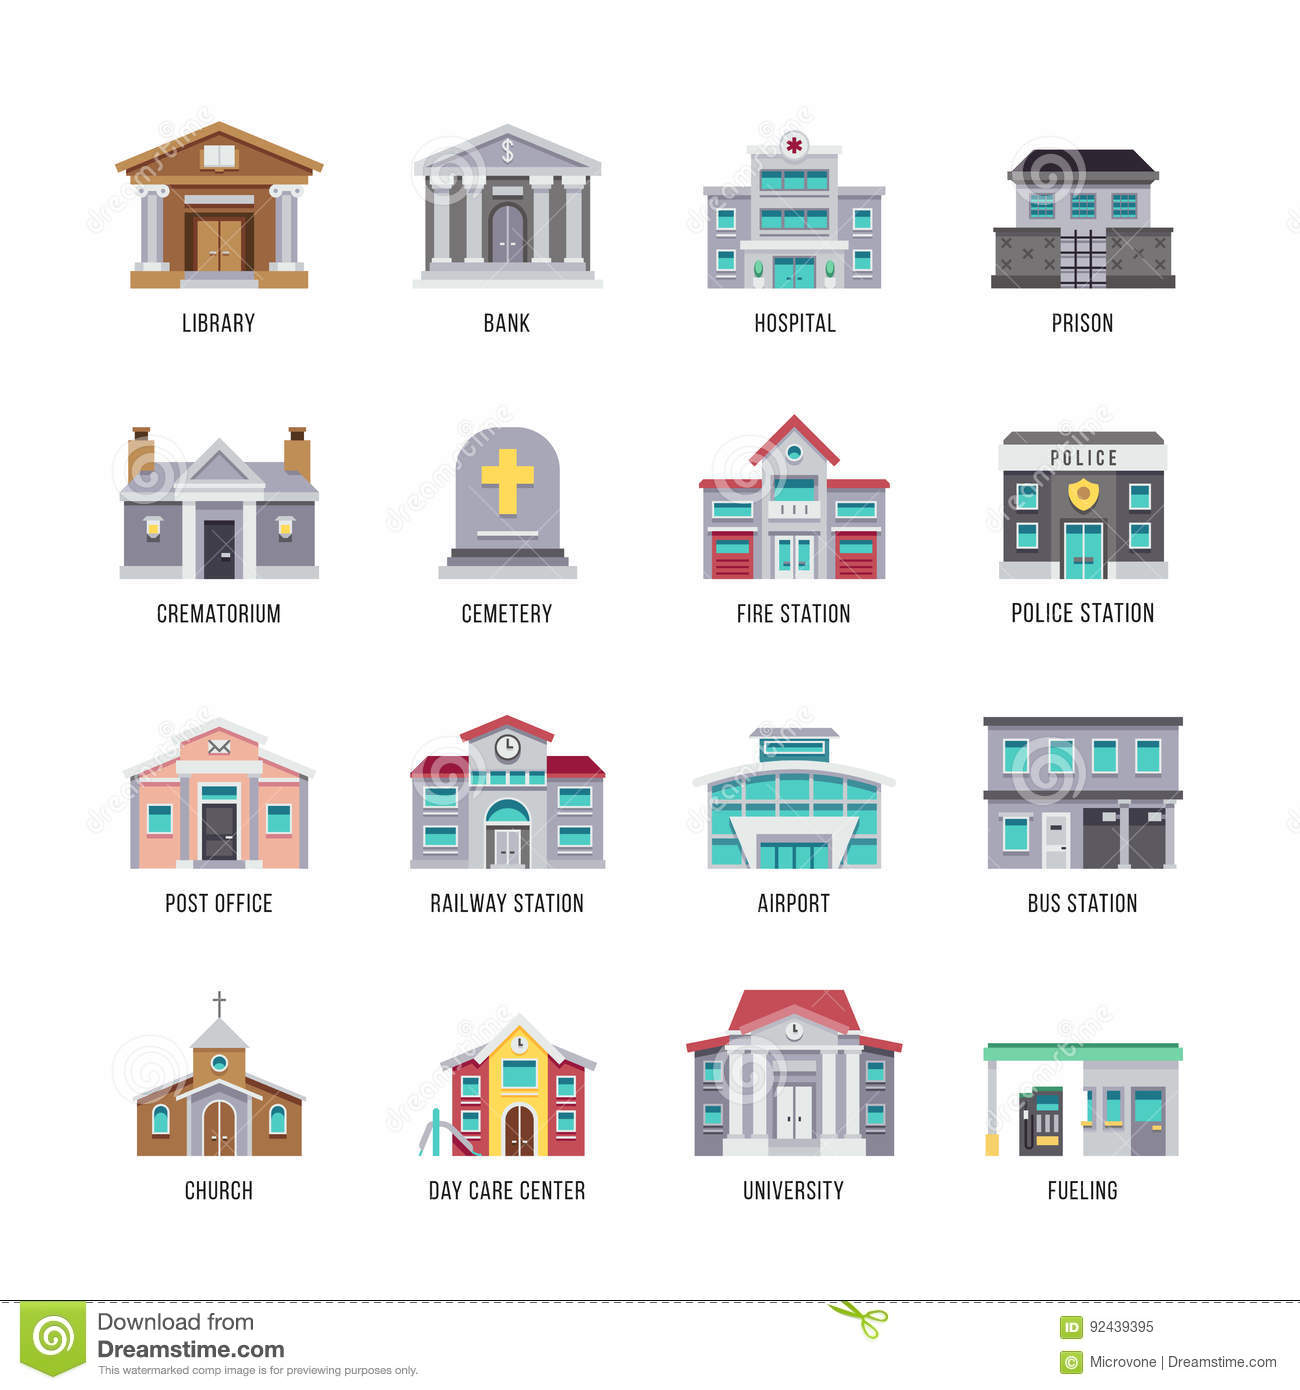 Municipal city buildings library, bank, hospital, prison vector icon set